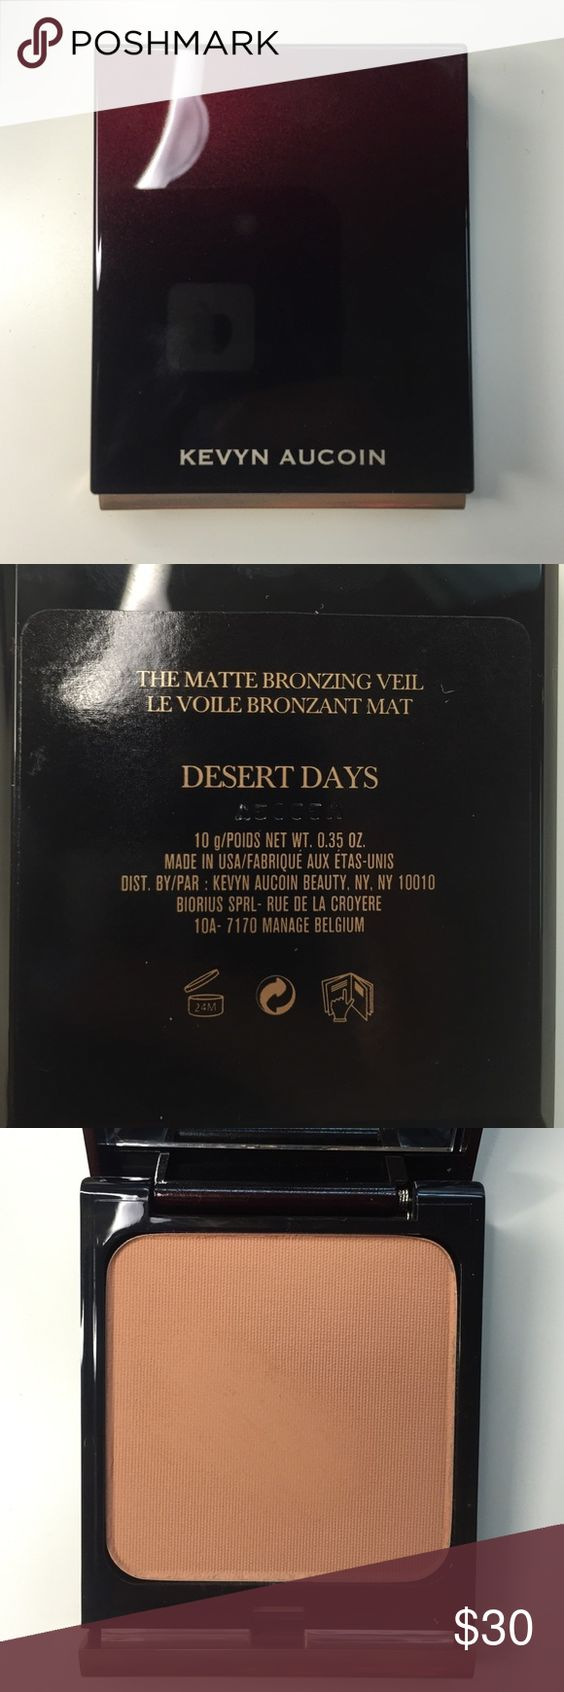 """Kevyn Aucoin The Matte Bronzing Veil NEVER USED only took a swatch with my clean finger. Kevin Aucoin the matte bronzing veil in the shade """"Desert Days"""". Perfect bronzer for fair skin. Comes with suede dust bag Kevyn Aucoin Makeup Bronzer"""